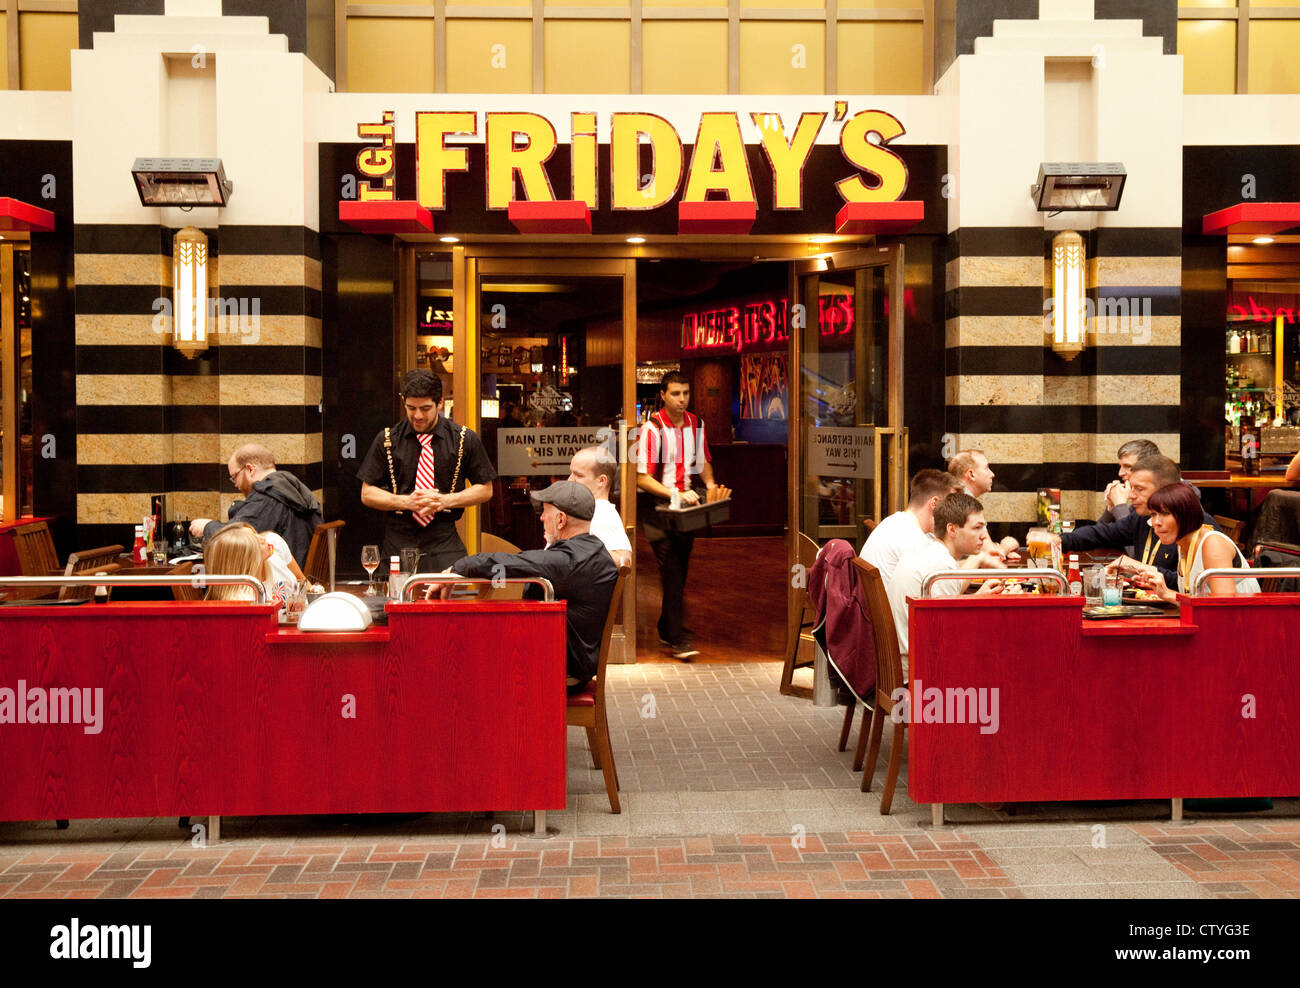 waiter serving people eating at tgi fridays restaurant